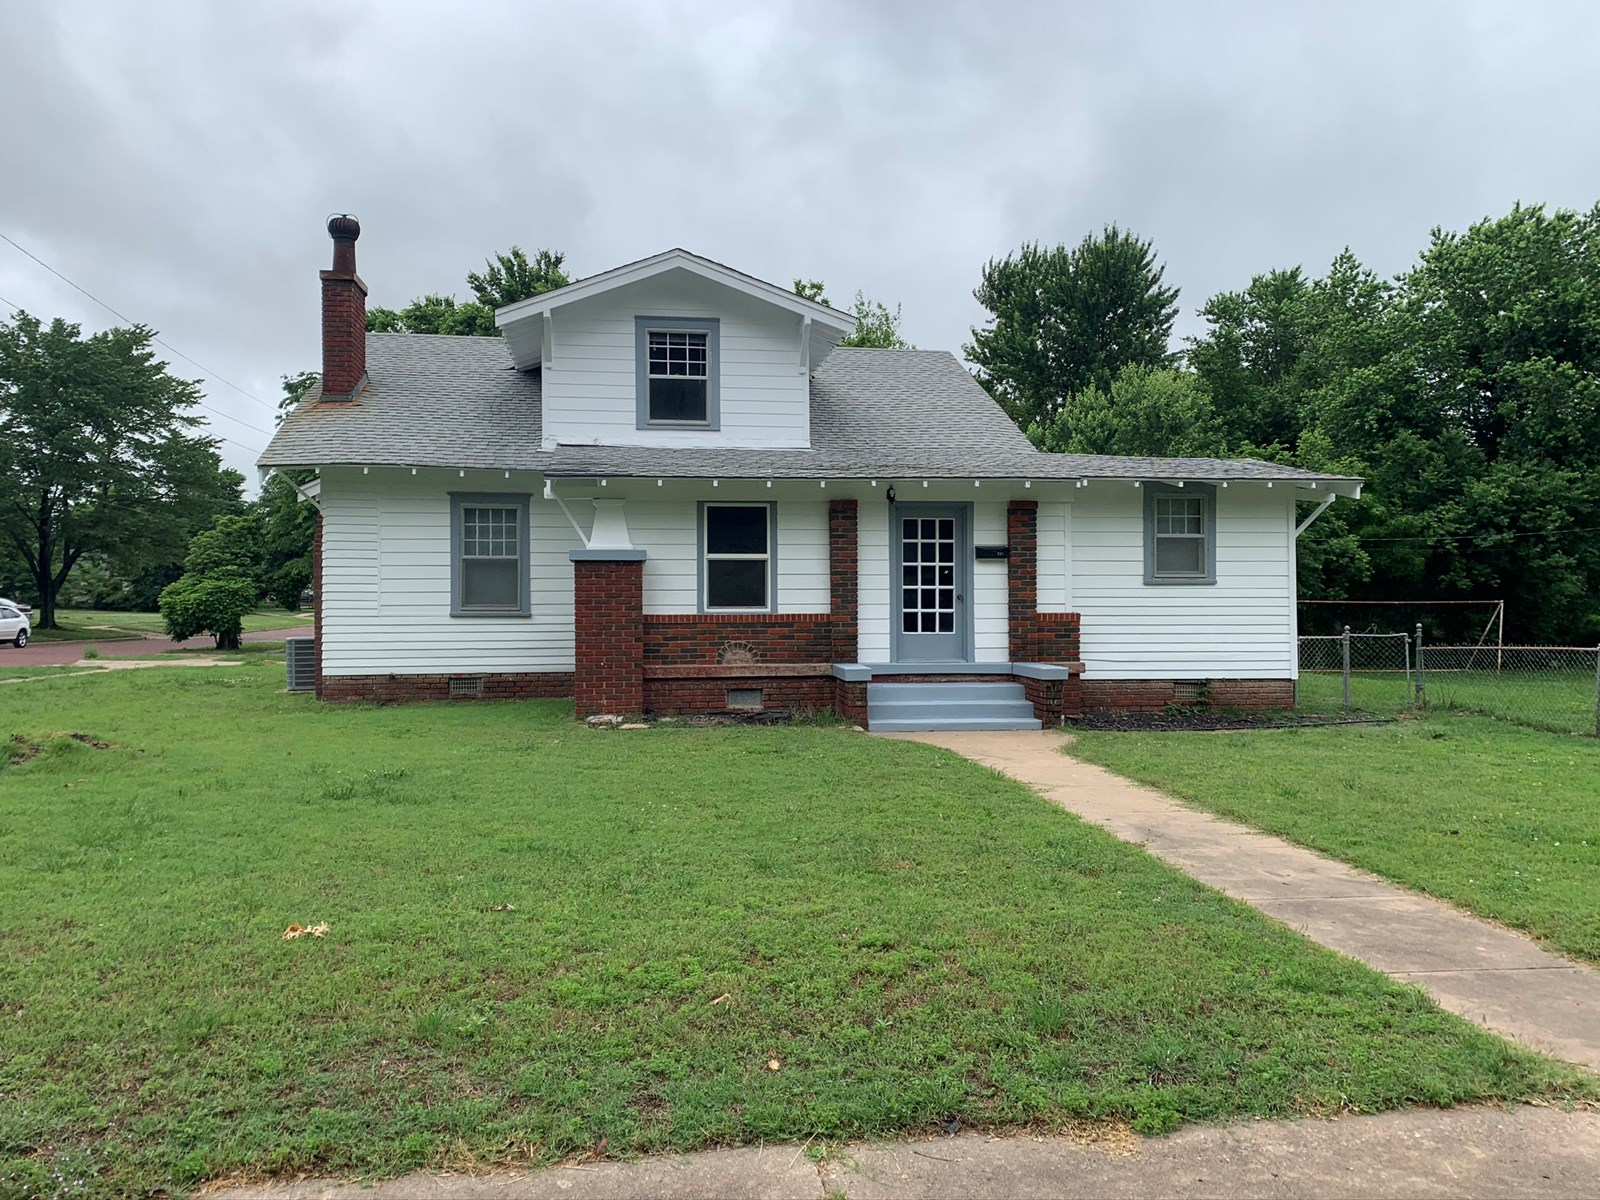 PONCA CITY HOME FOR SALE, NORTH CENTRAL OKLAHOMA